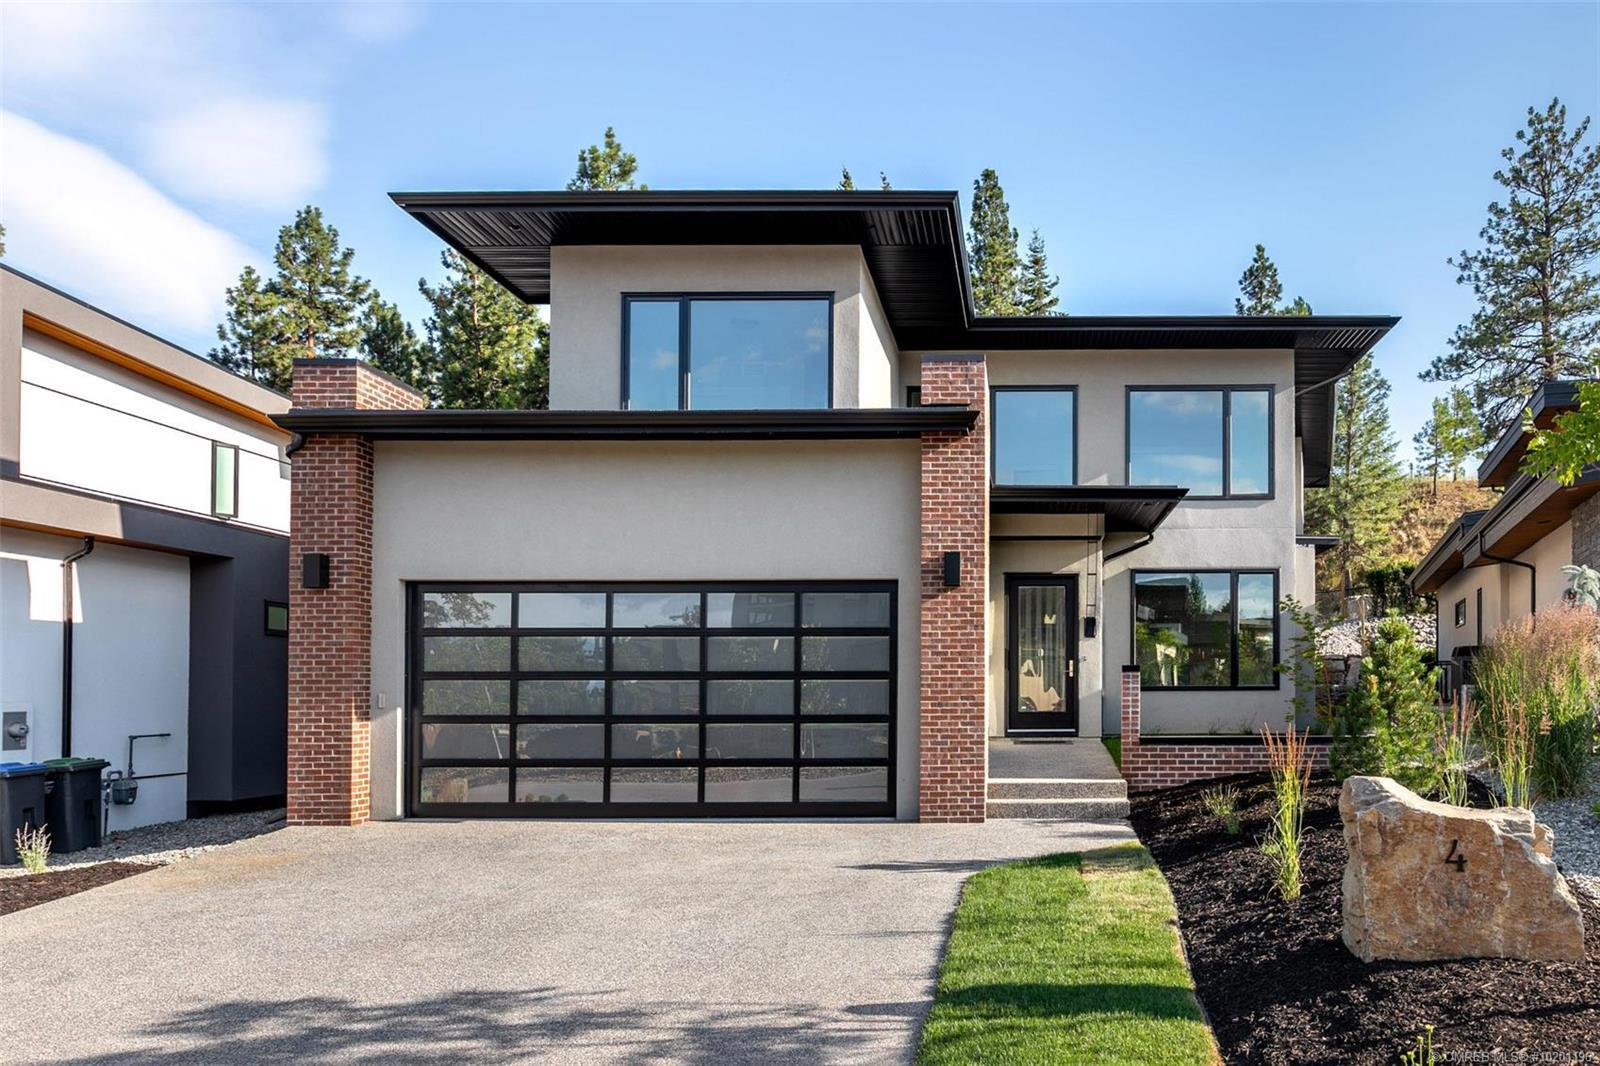 Removed: 4 - 1150 Mission Ridge Road, Kelowna, BC - Removed on 2020-05-21 23:21:08